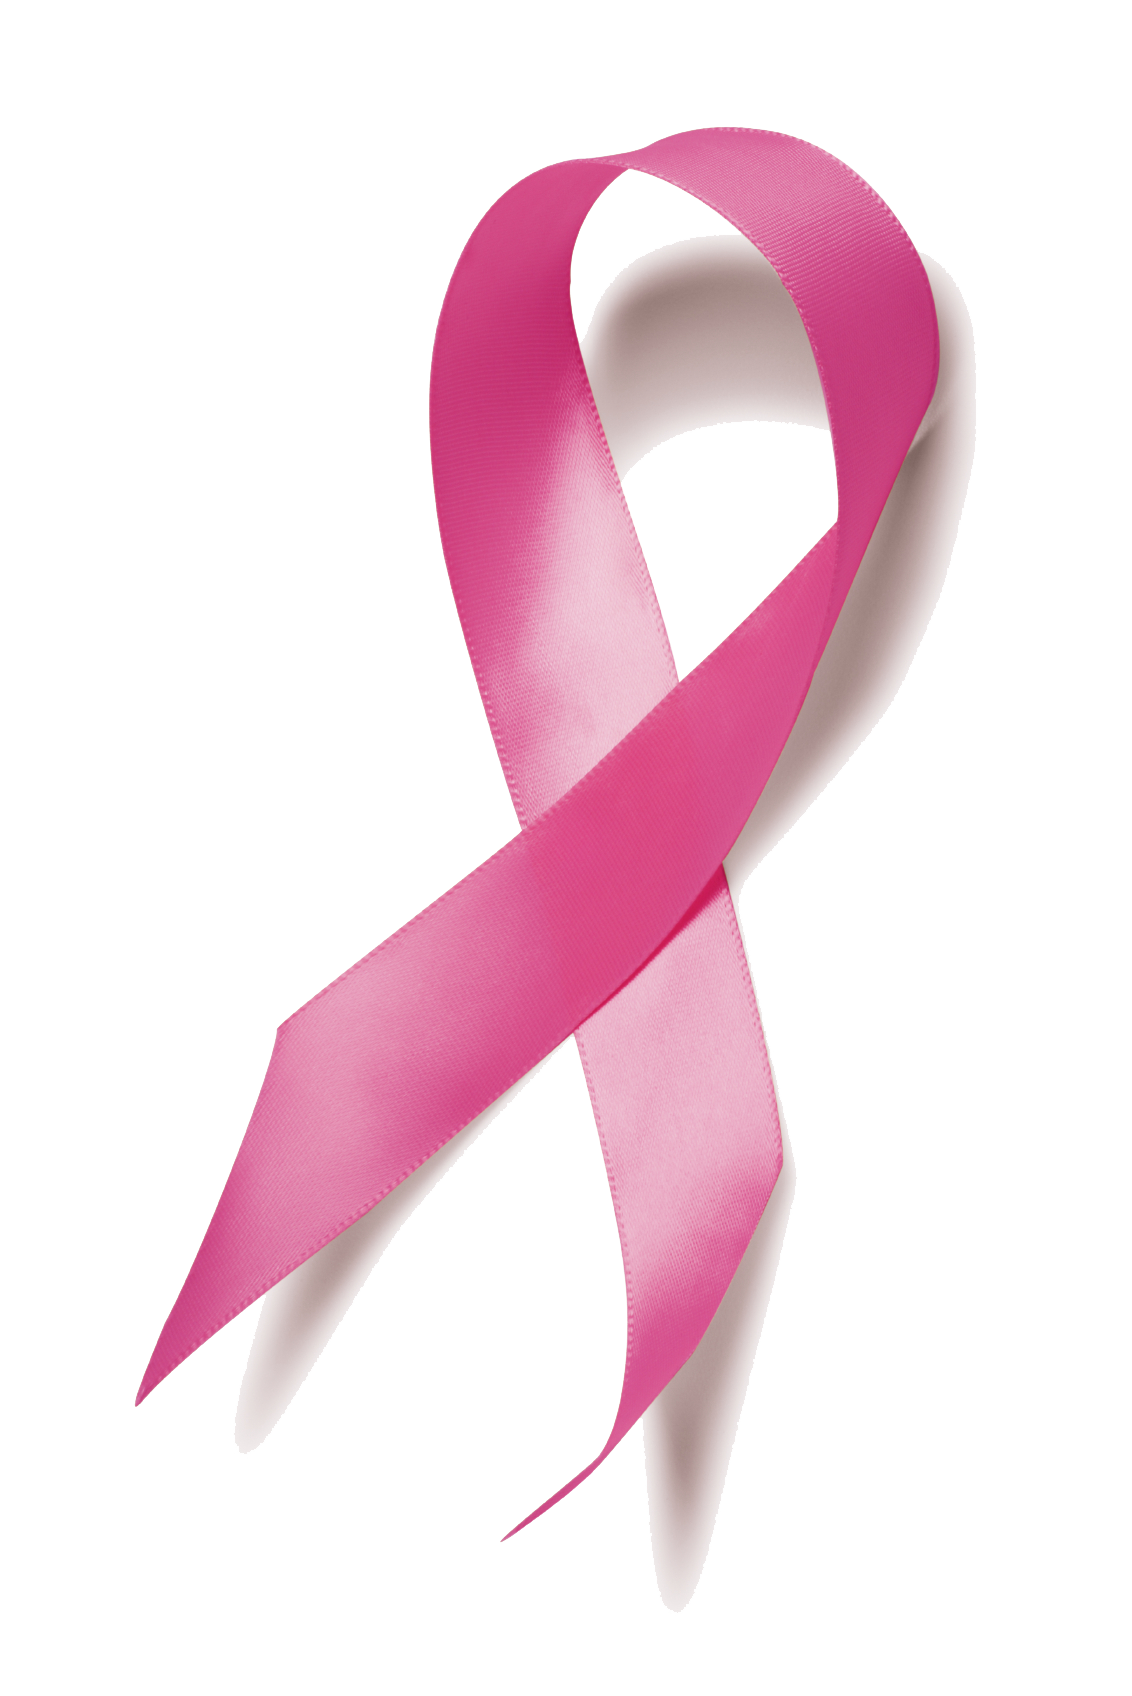 shady breast cancer ribbon png transparent images #40844